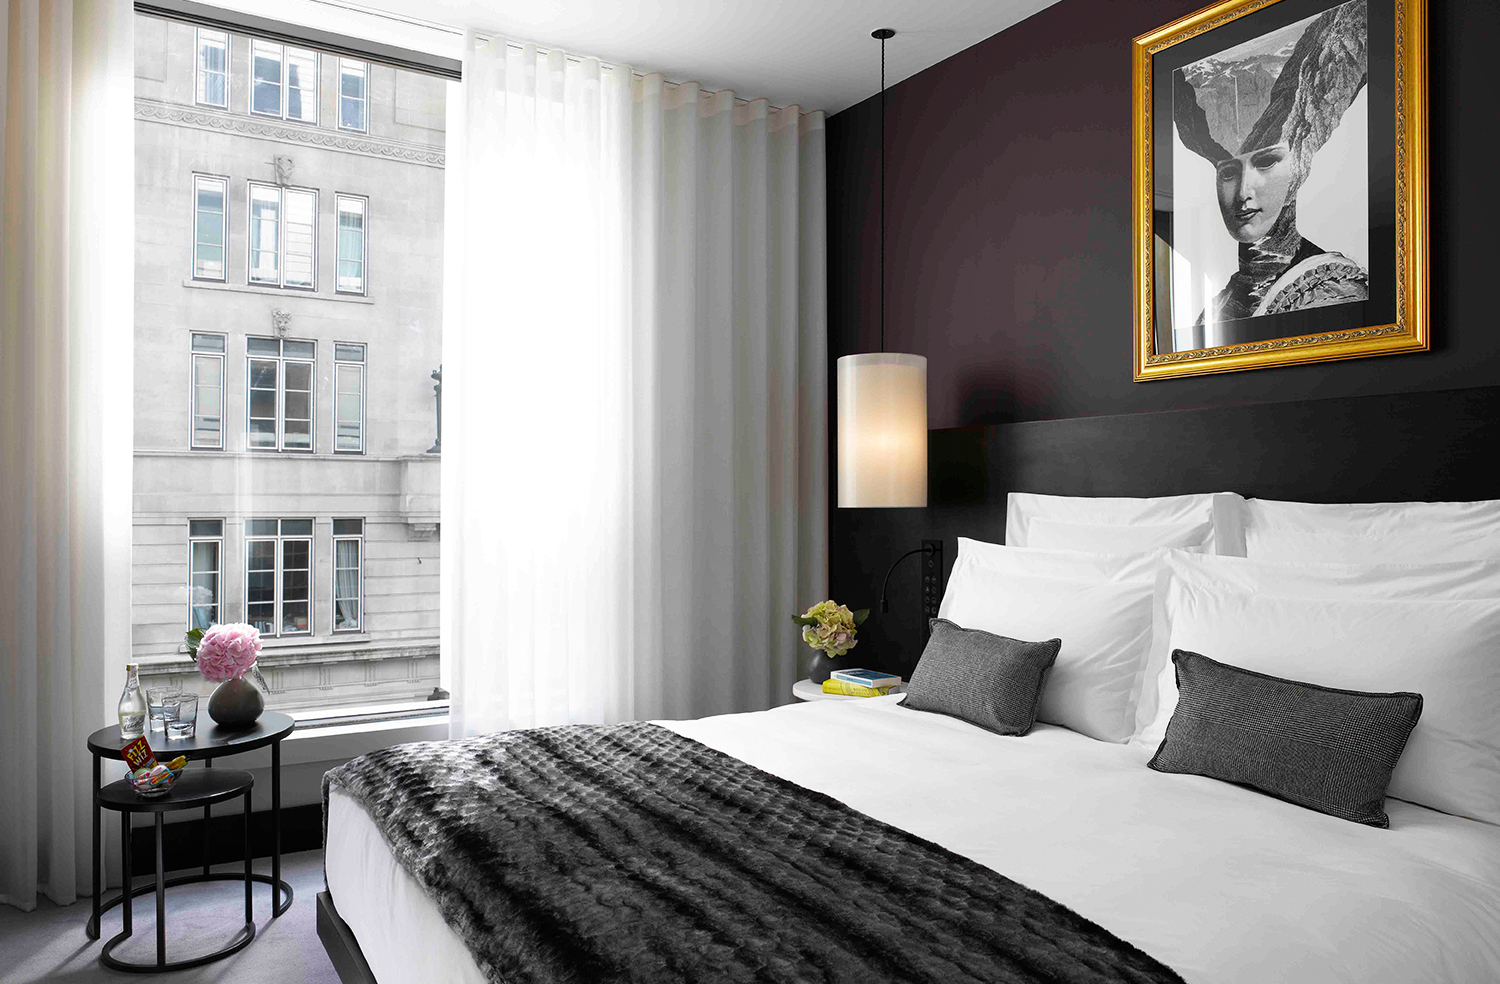 South Palace Hotel London, Hotels to stay during London Fashion Week